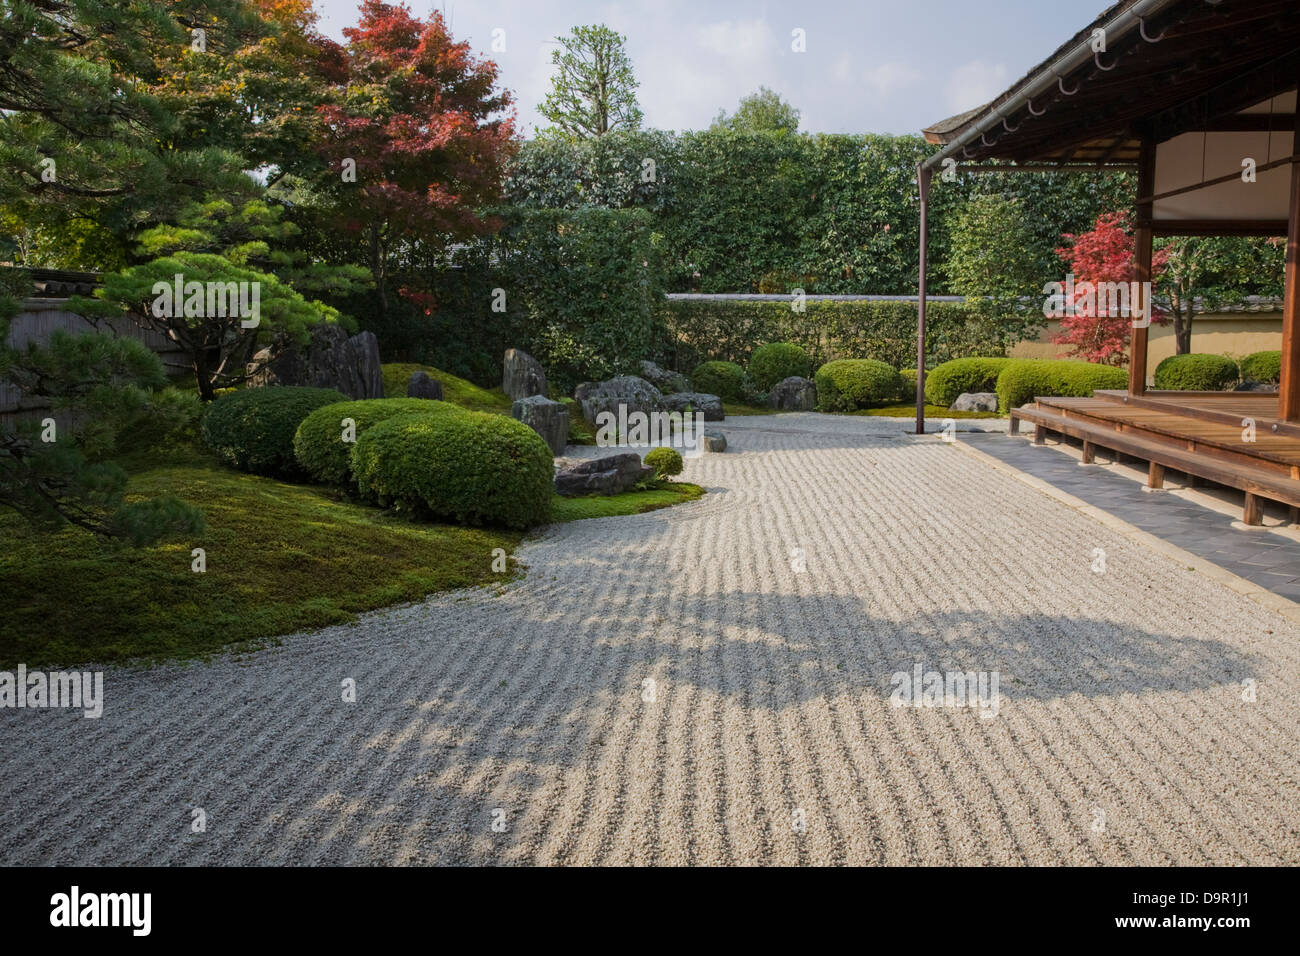 korin in uses typical zen style architecture and landscaping of